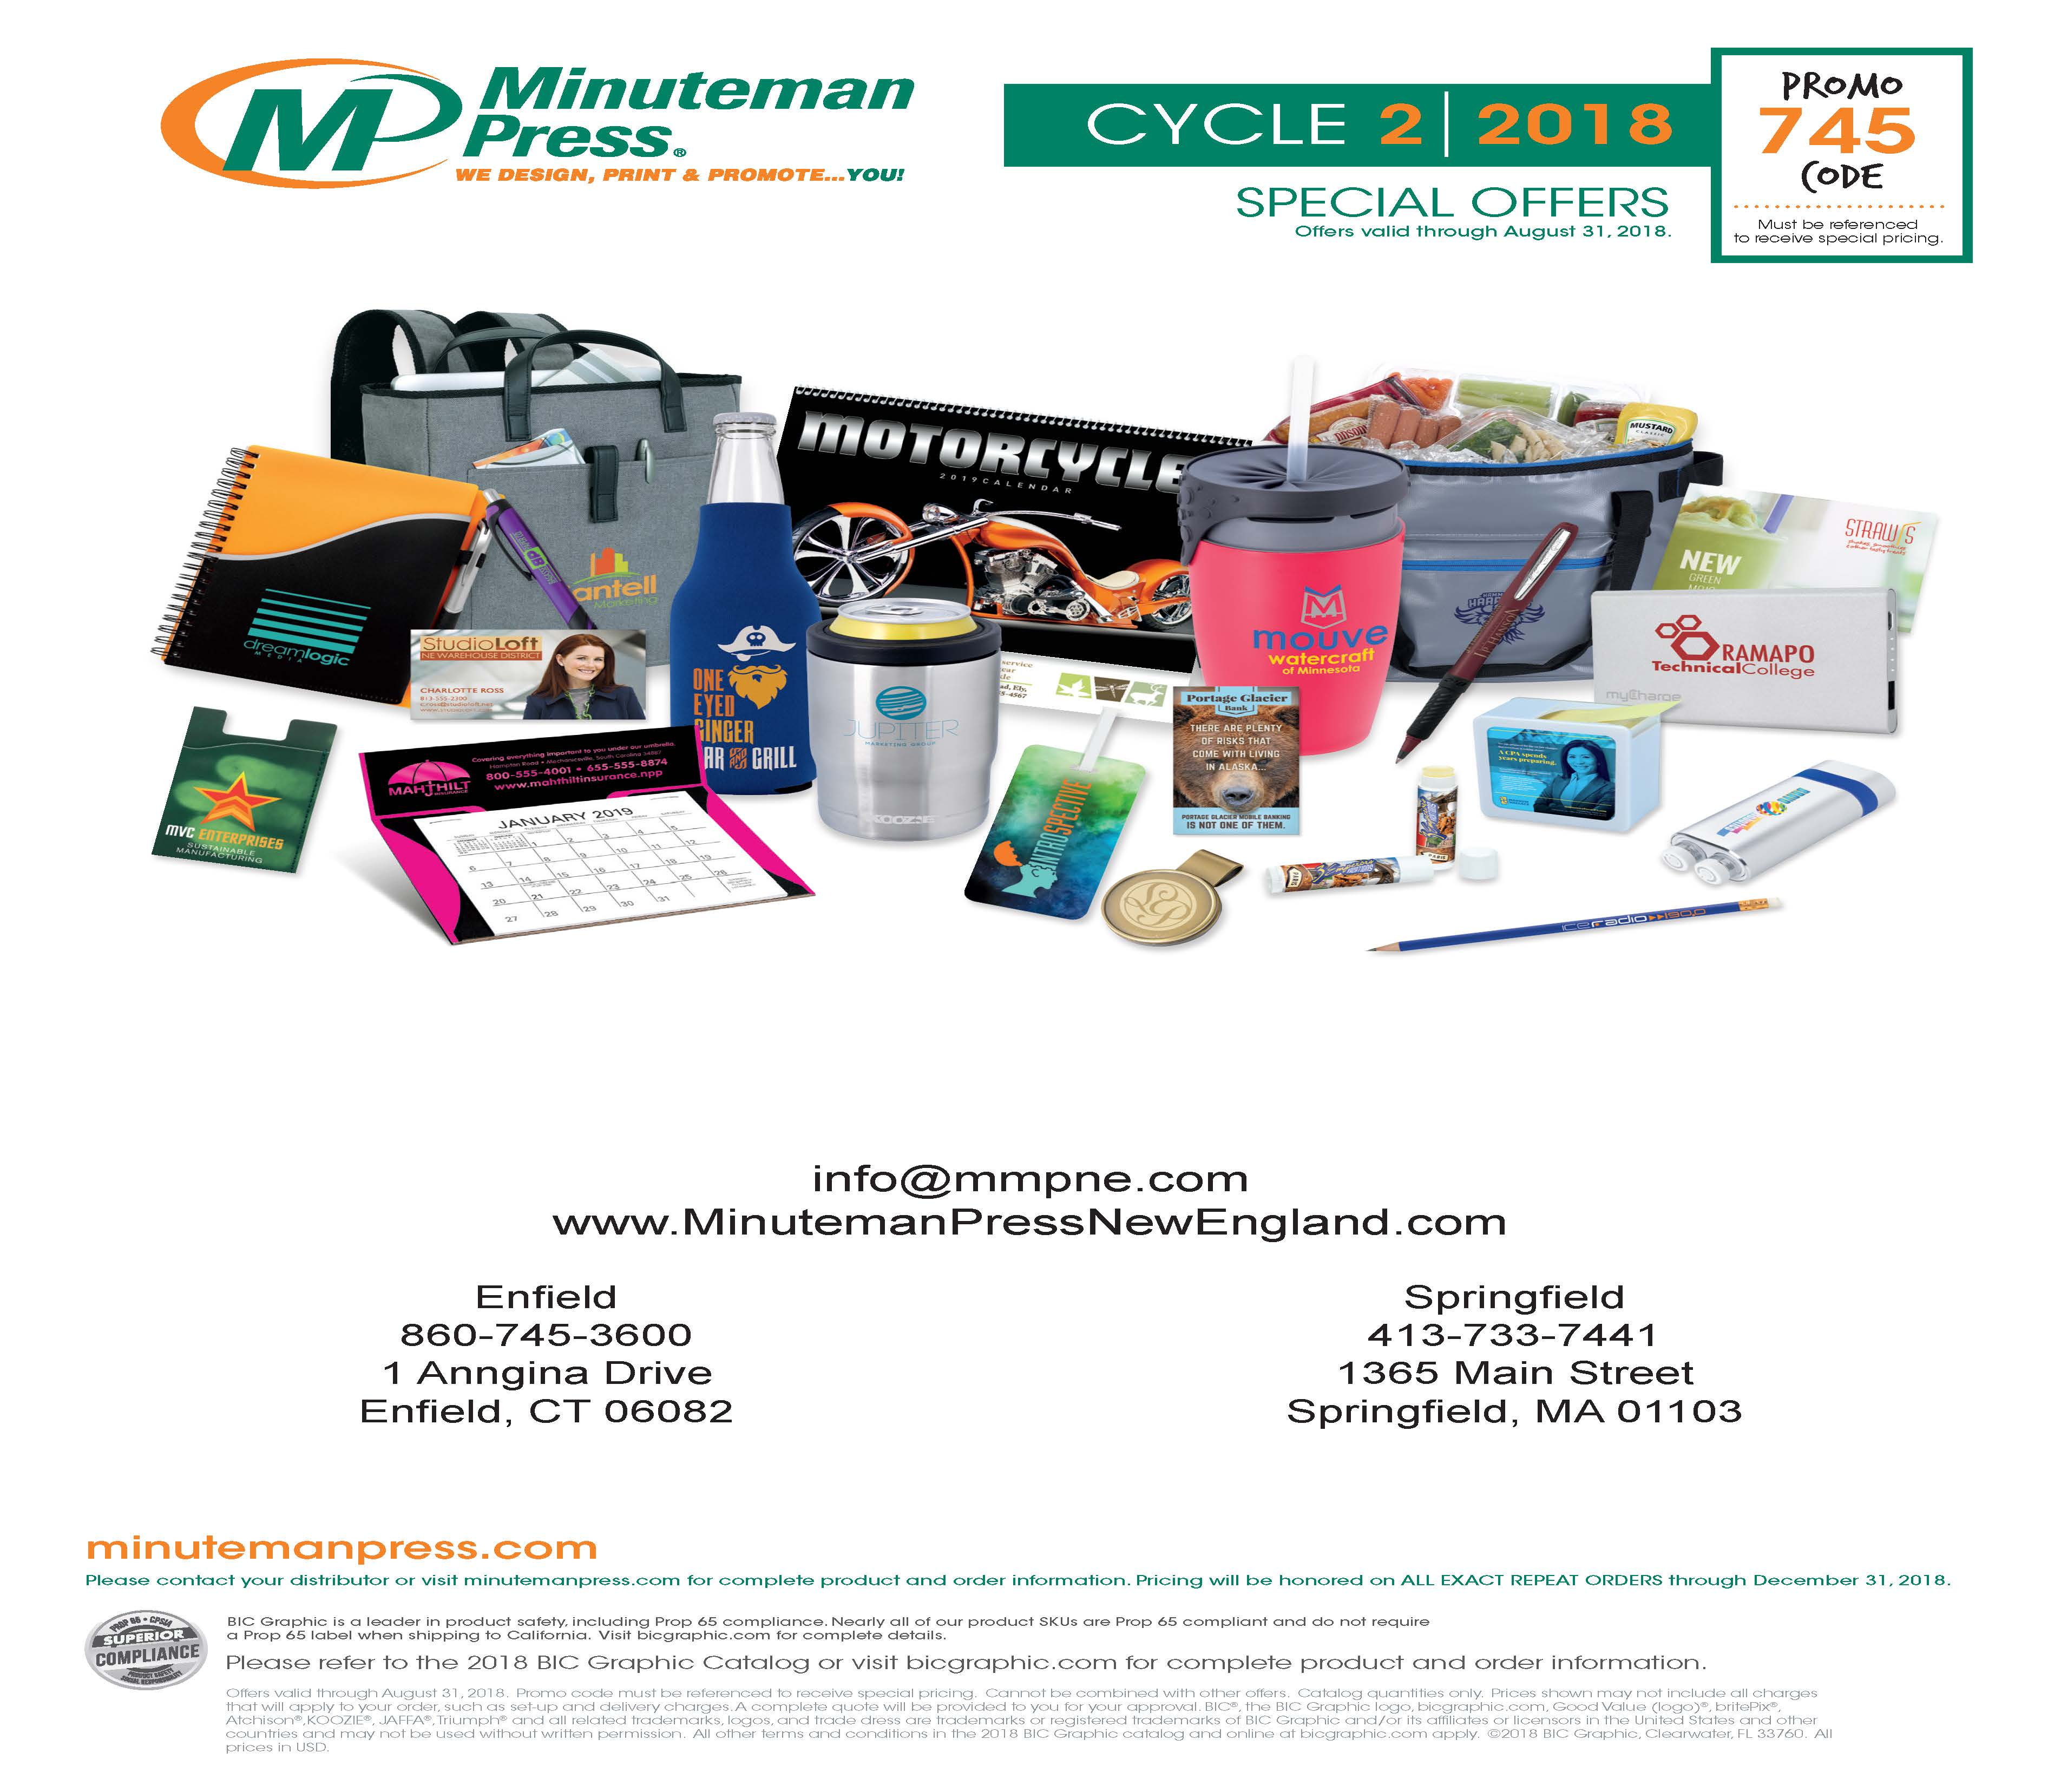 2018 - Cycle 2 Flyer - US - MP Version Folder_Page_16